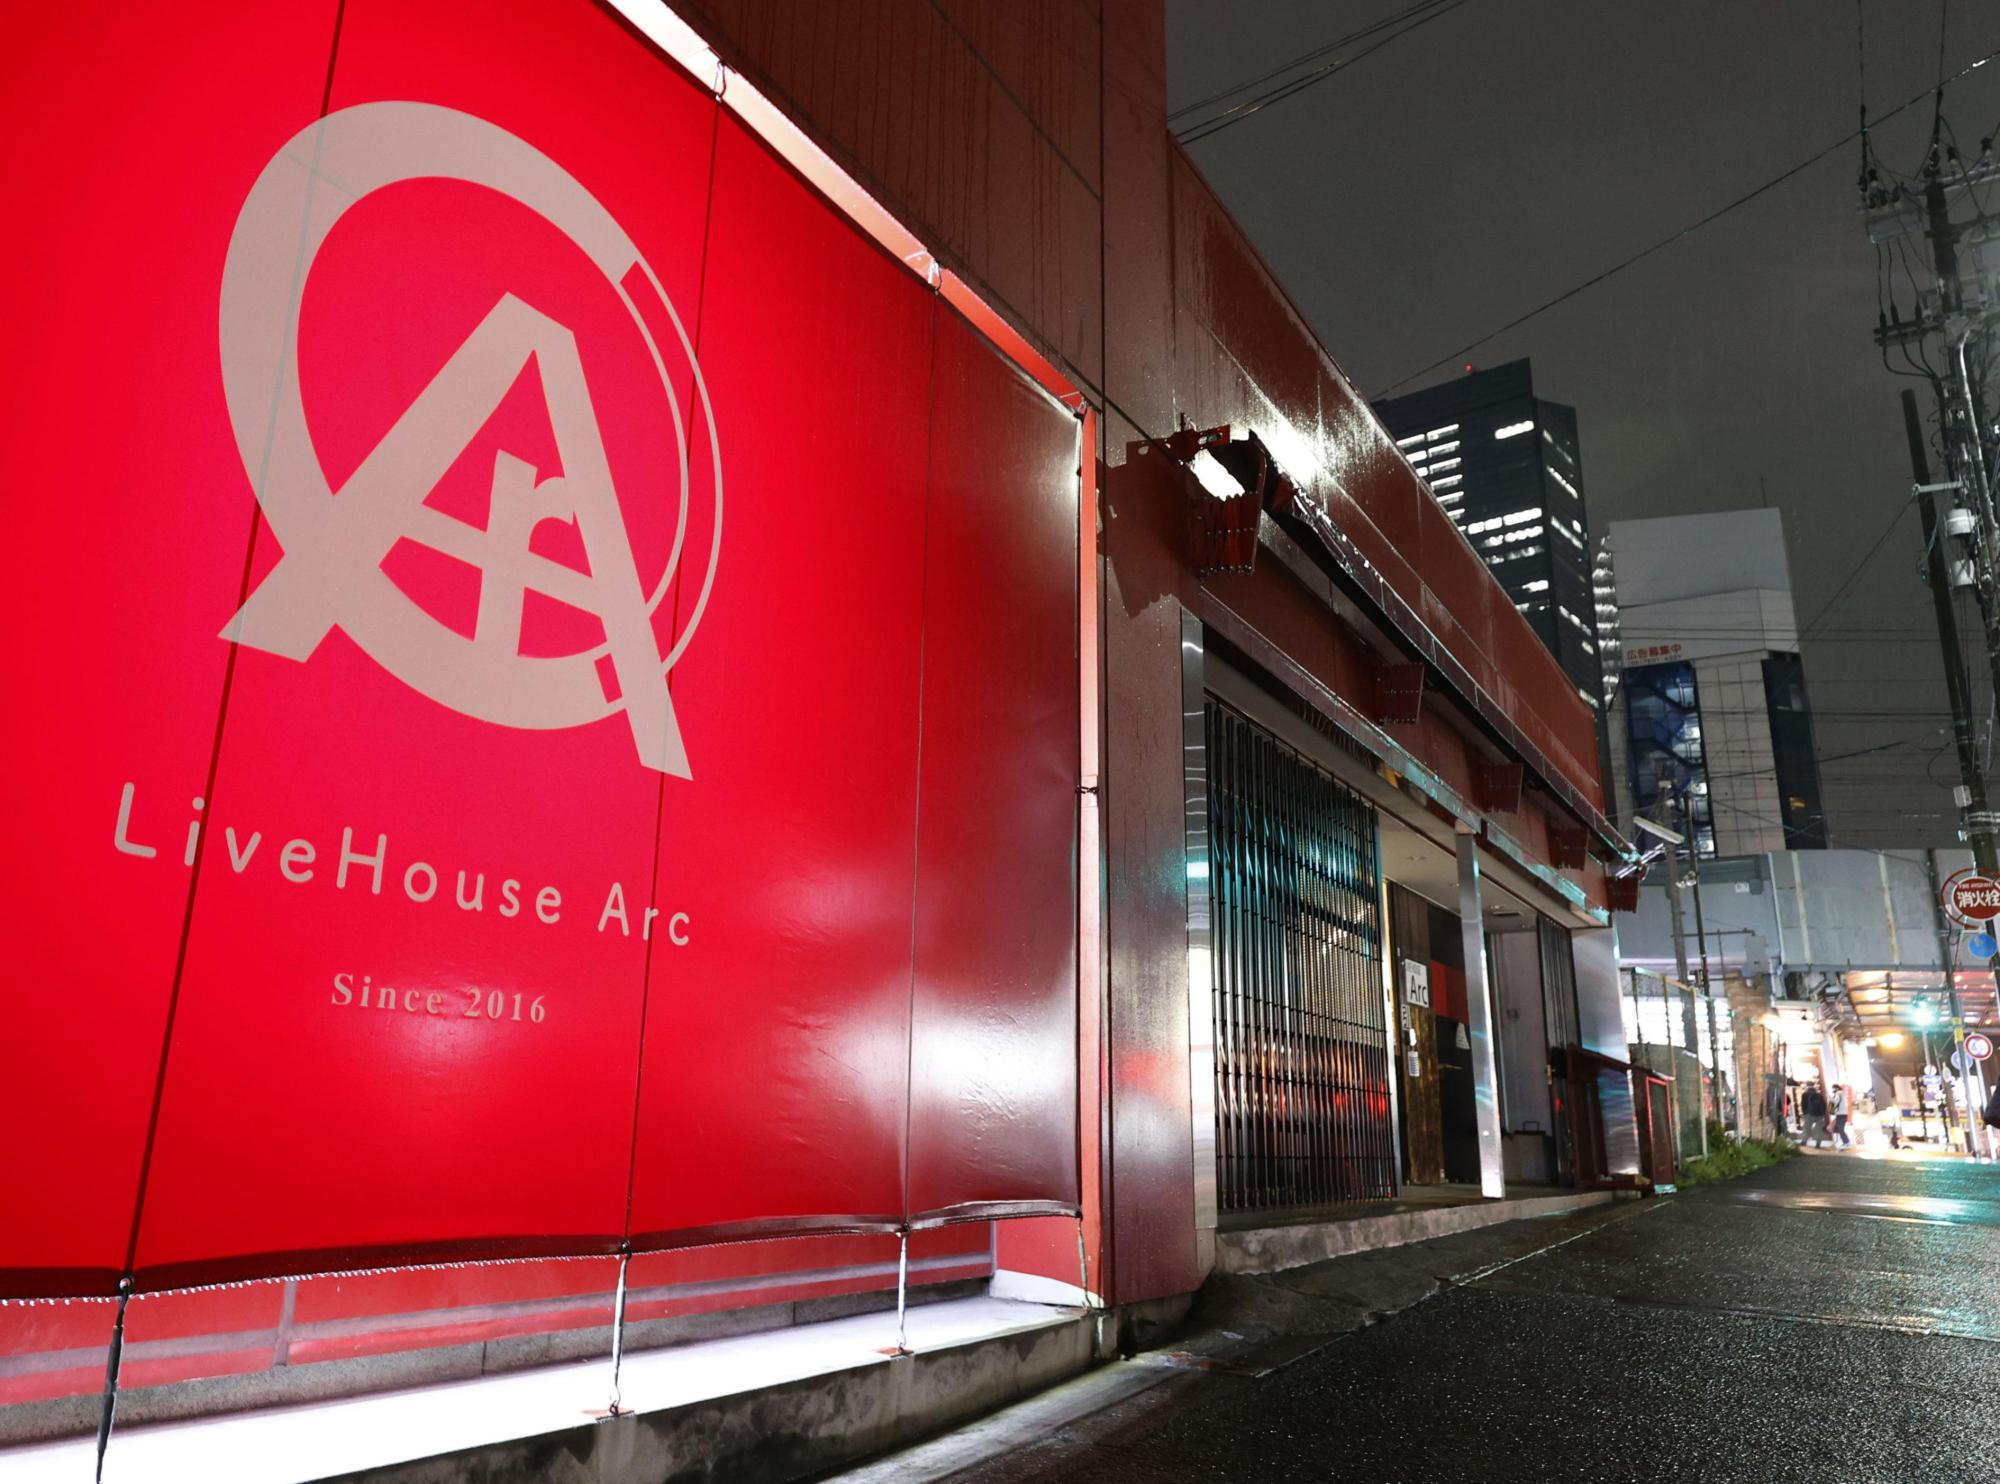 Mass infections of the novel coronavirus are suspected to have taken place at the Arc music club in Osaka. | KYODO